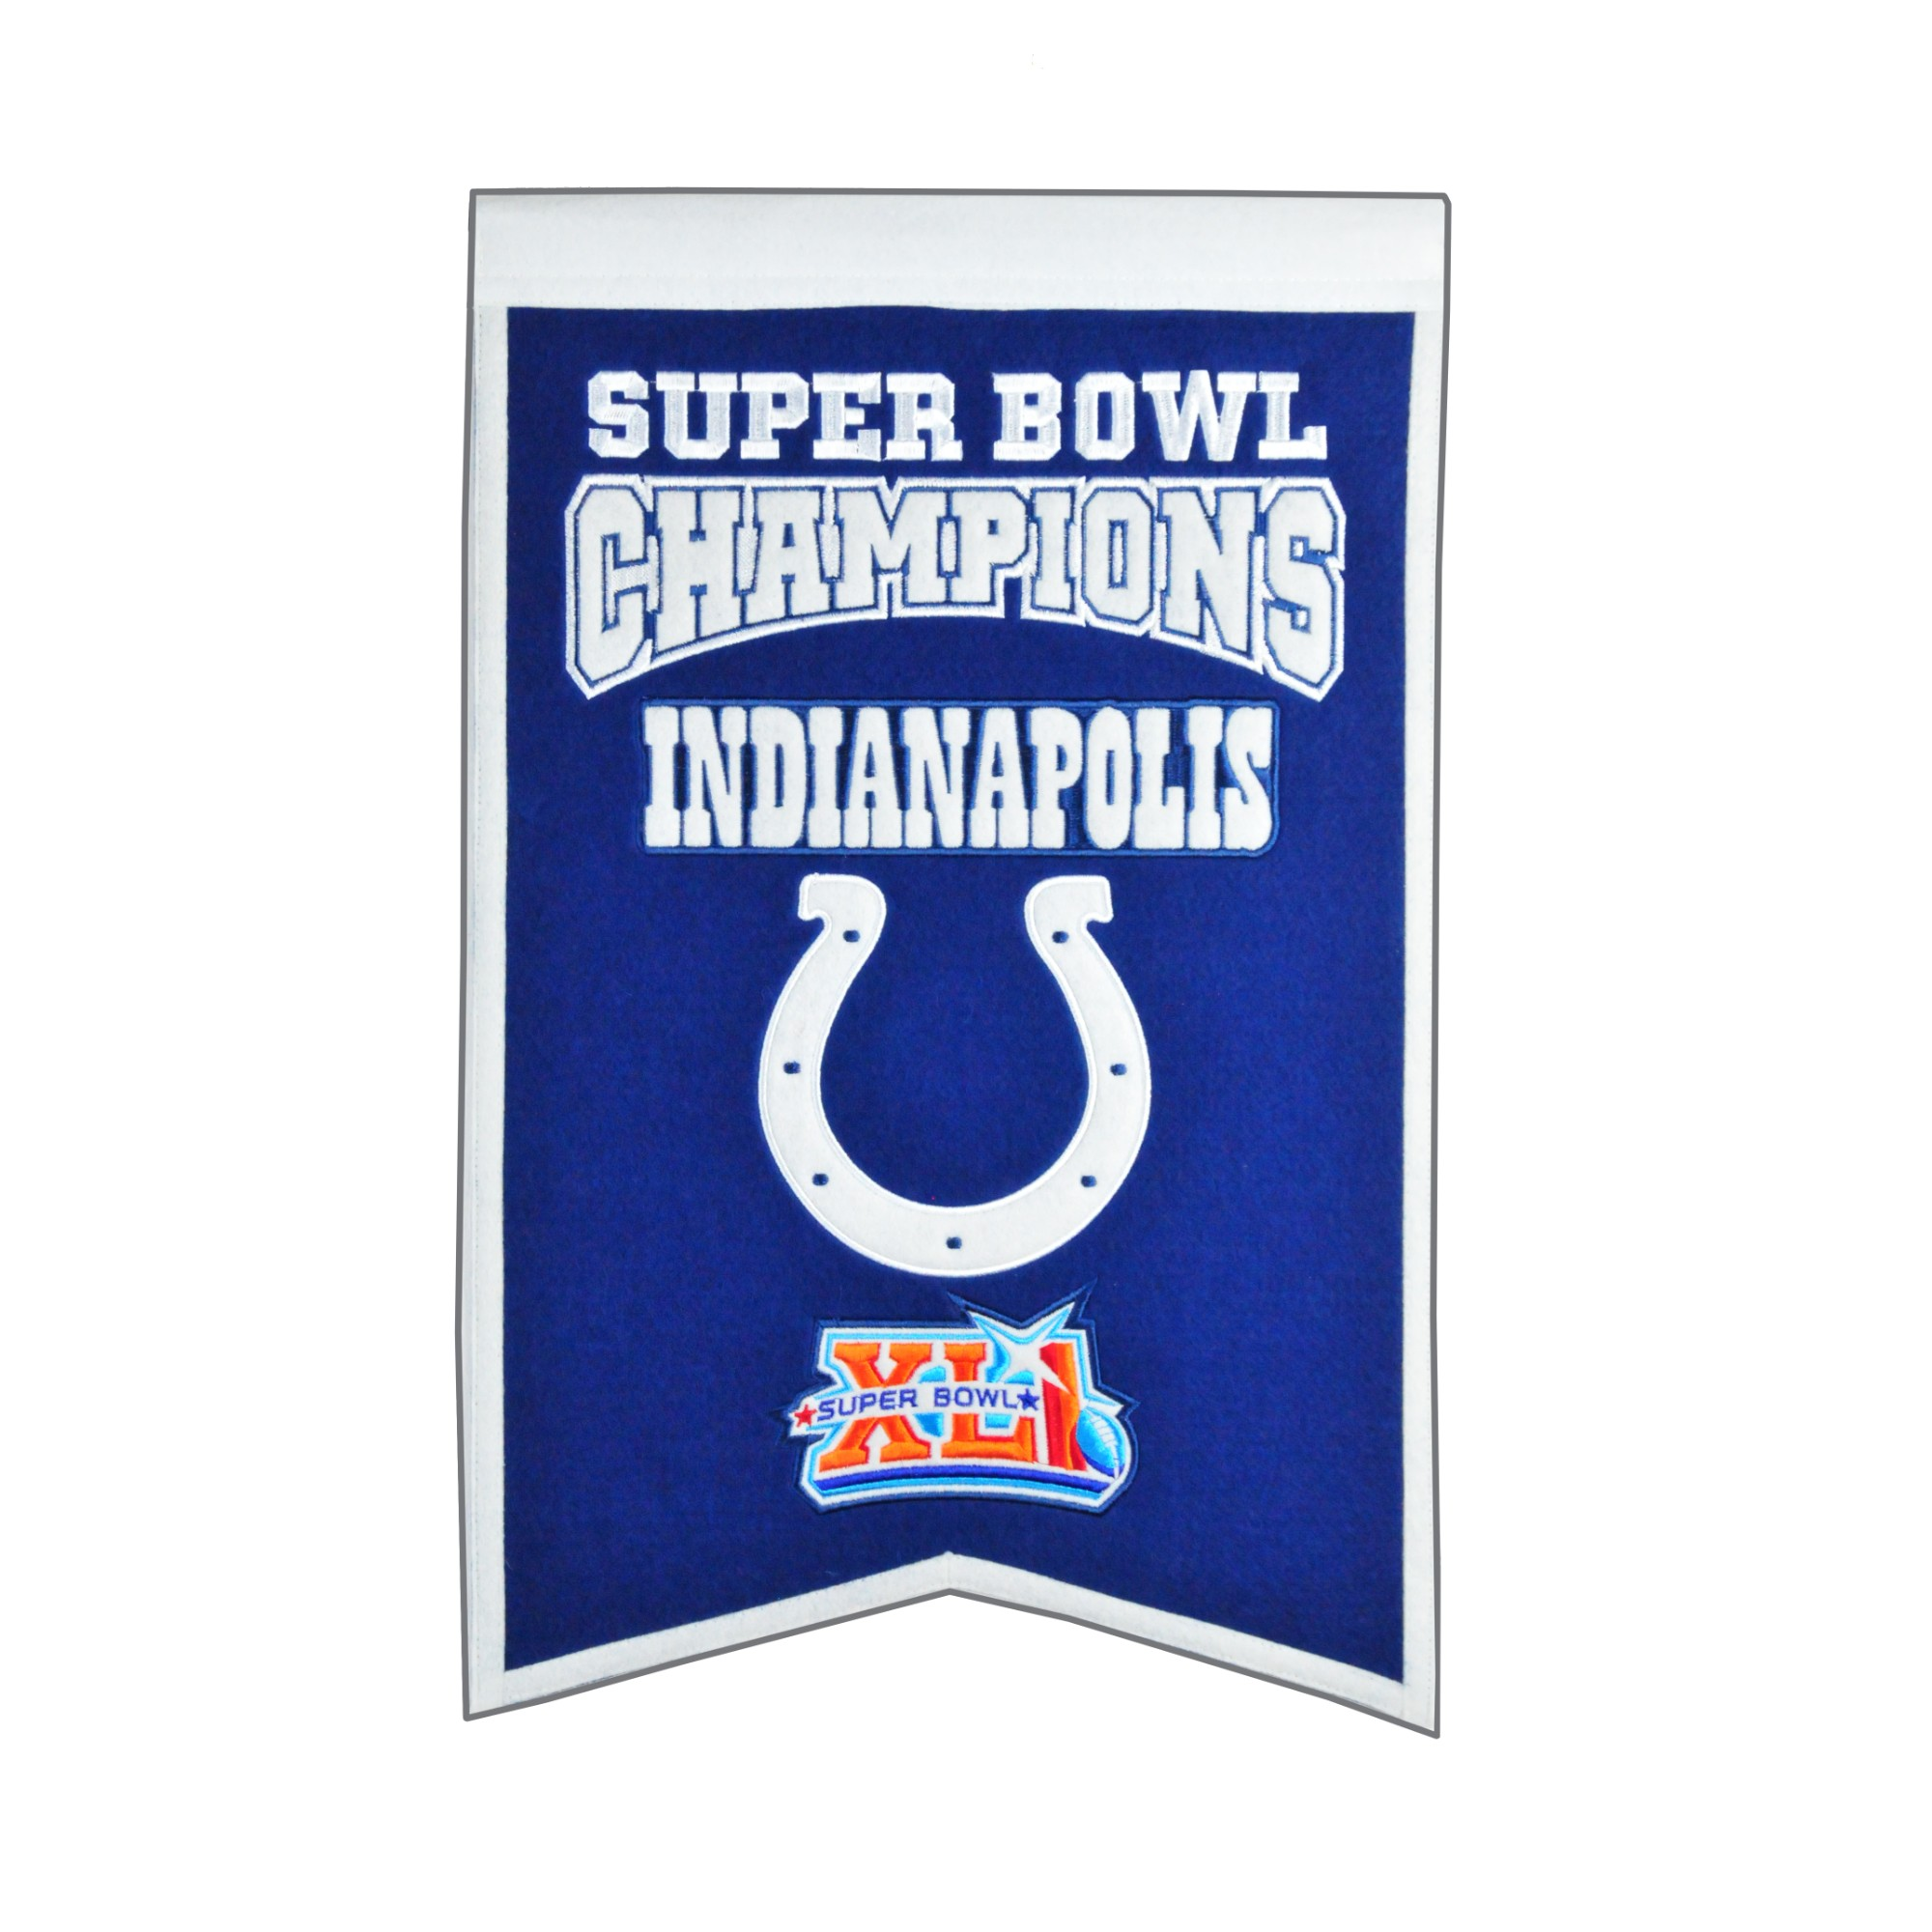 Winning Streak - NFL Champions Super Bowl Banner, Indianapolis Colts